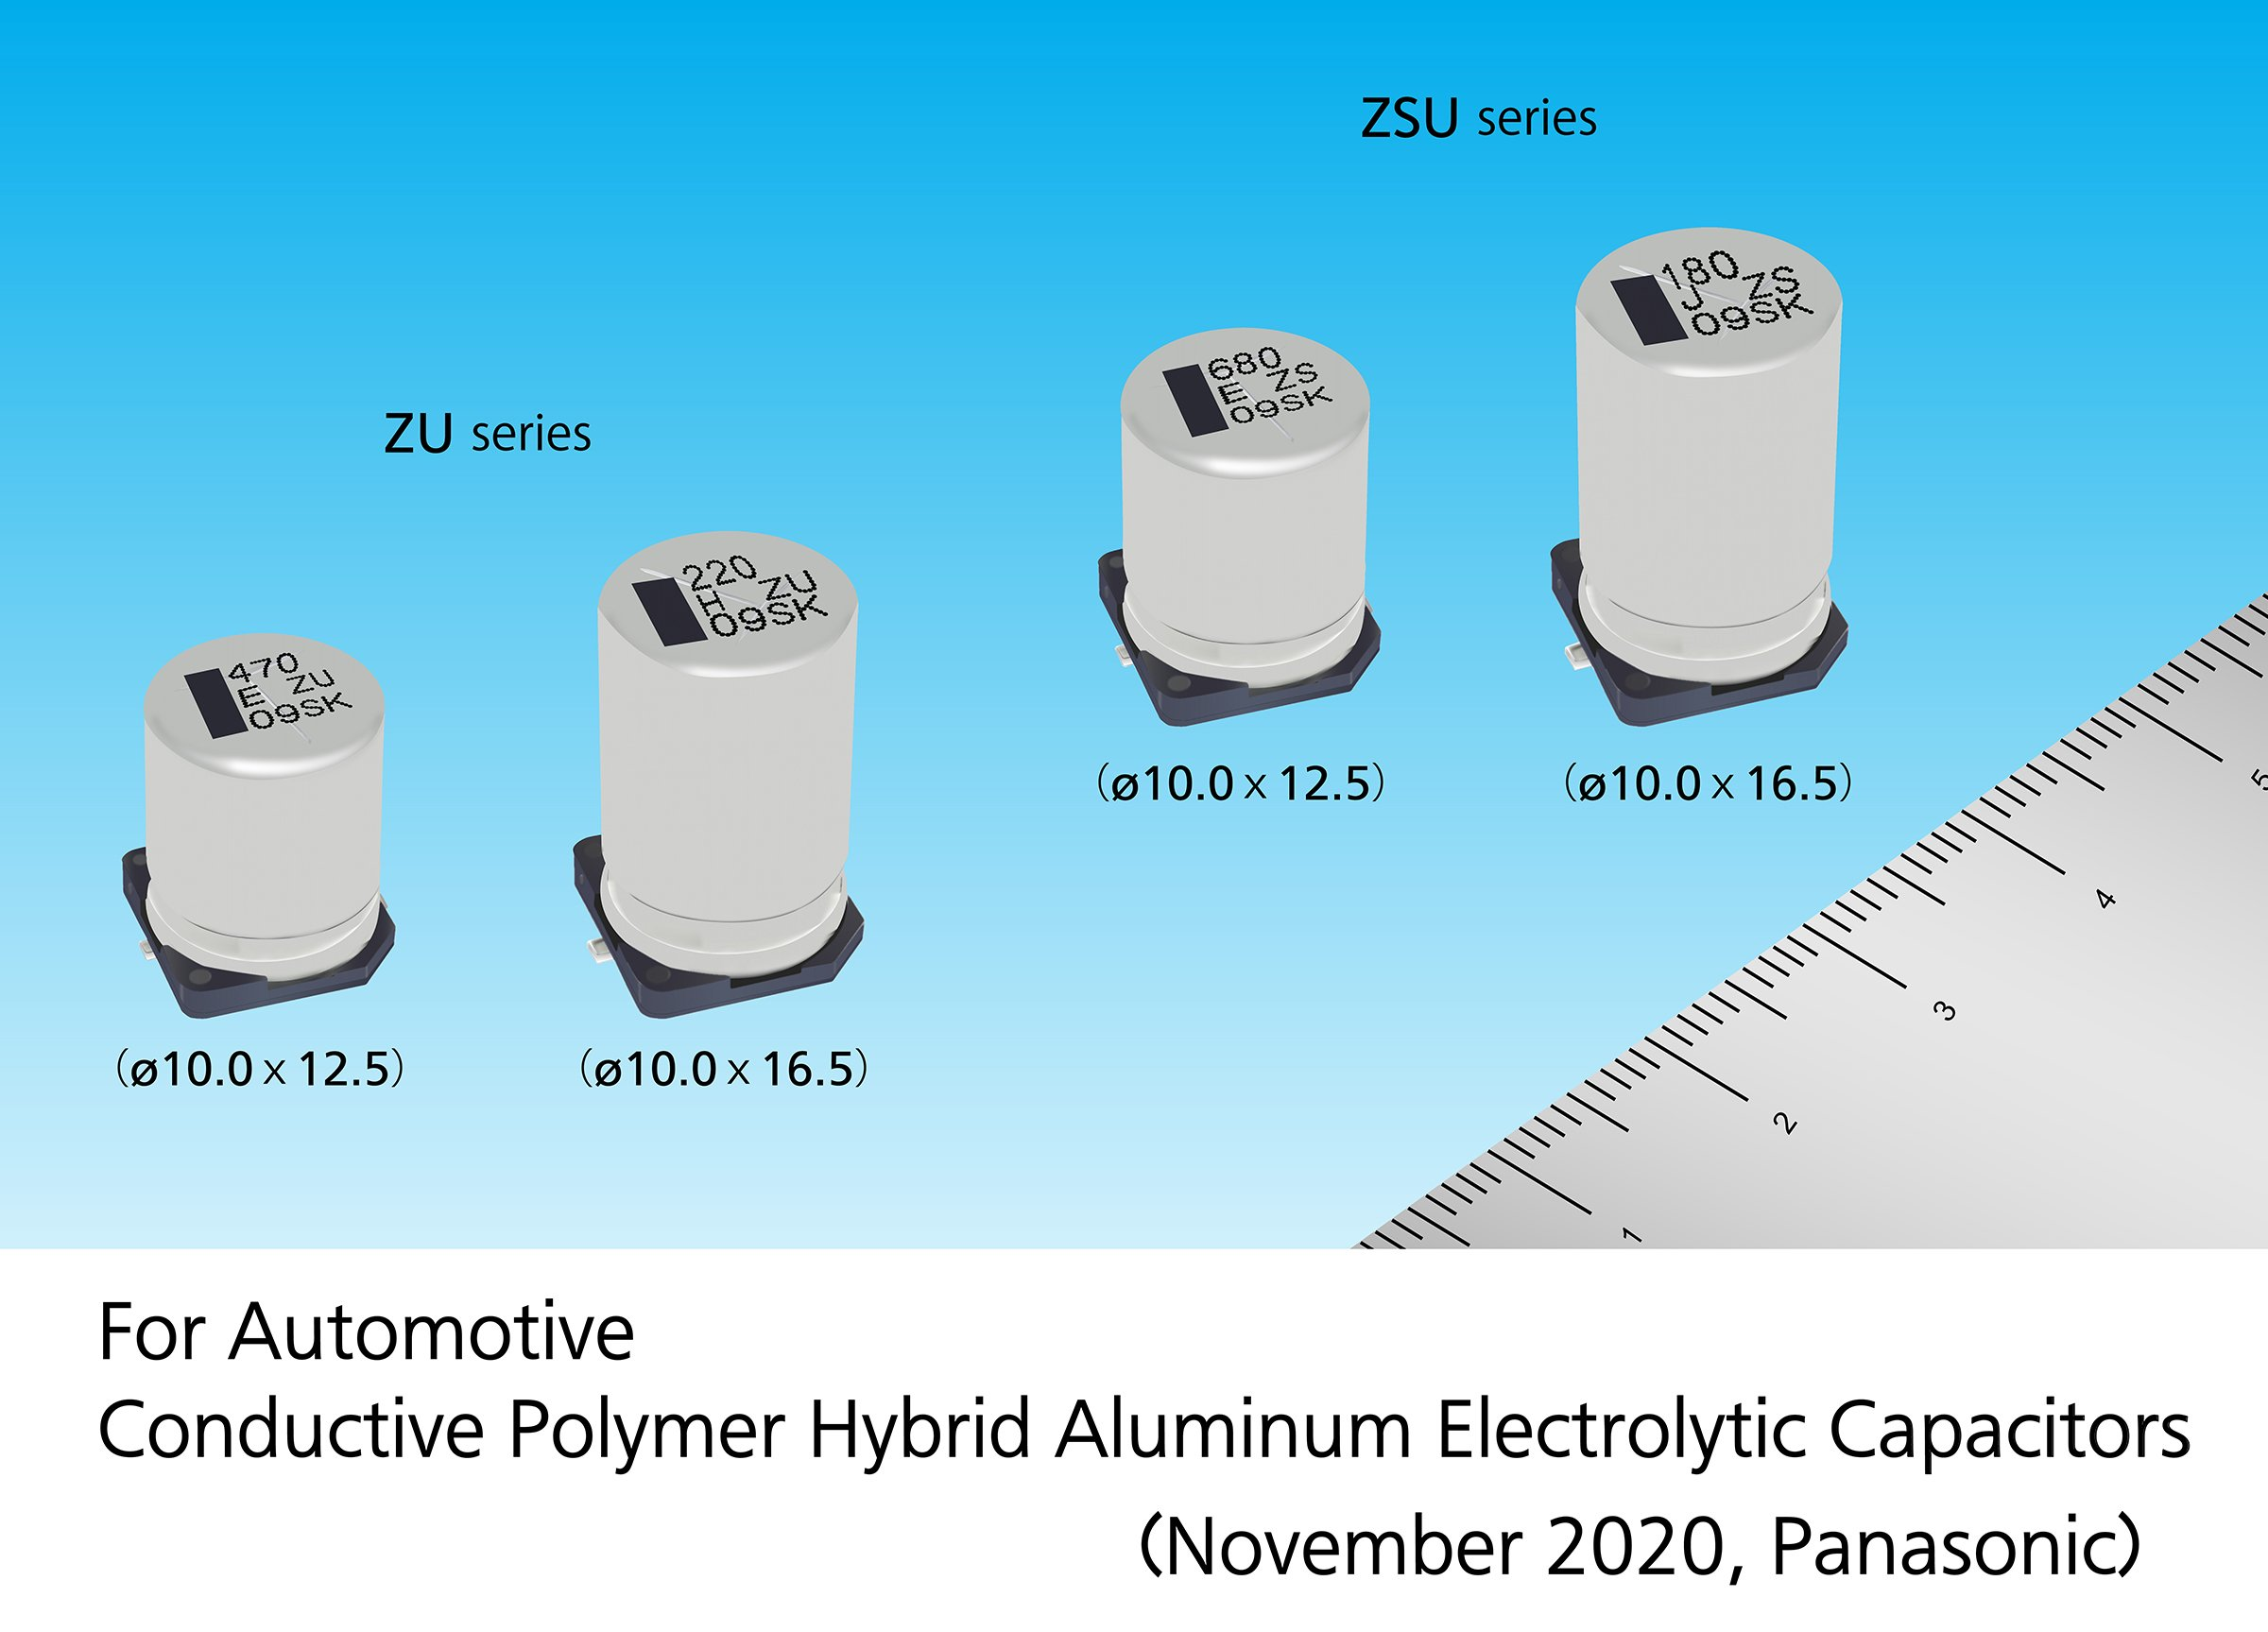 The ZU series and the ZSU series conductive polymer hybrid aluminum electrolytic capacitors